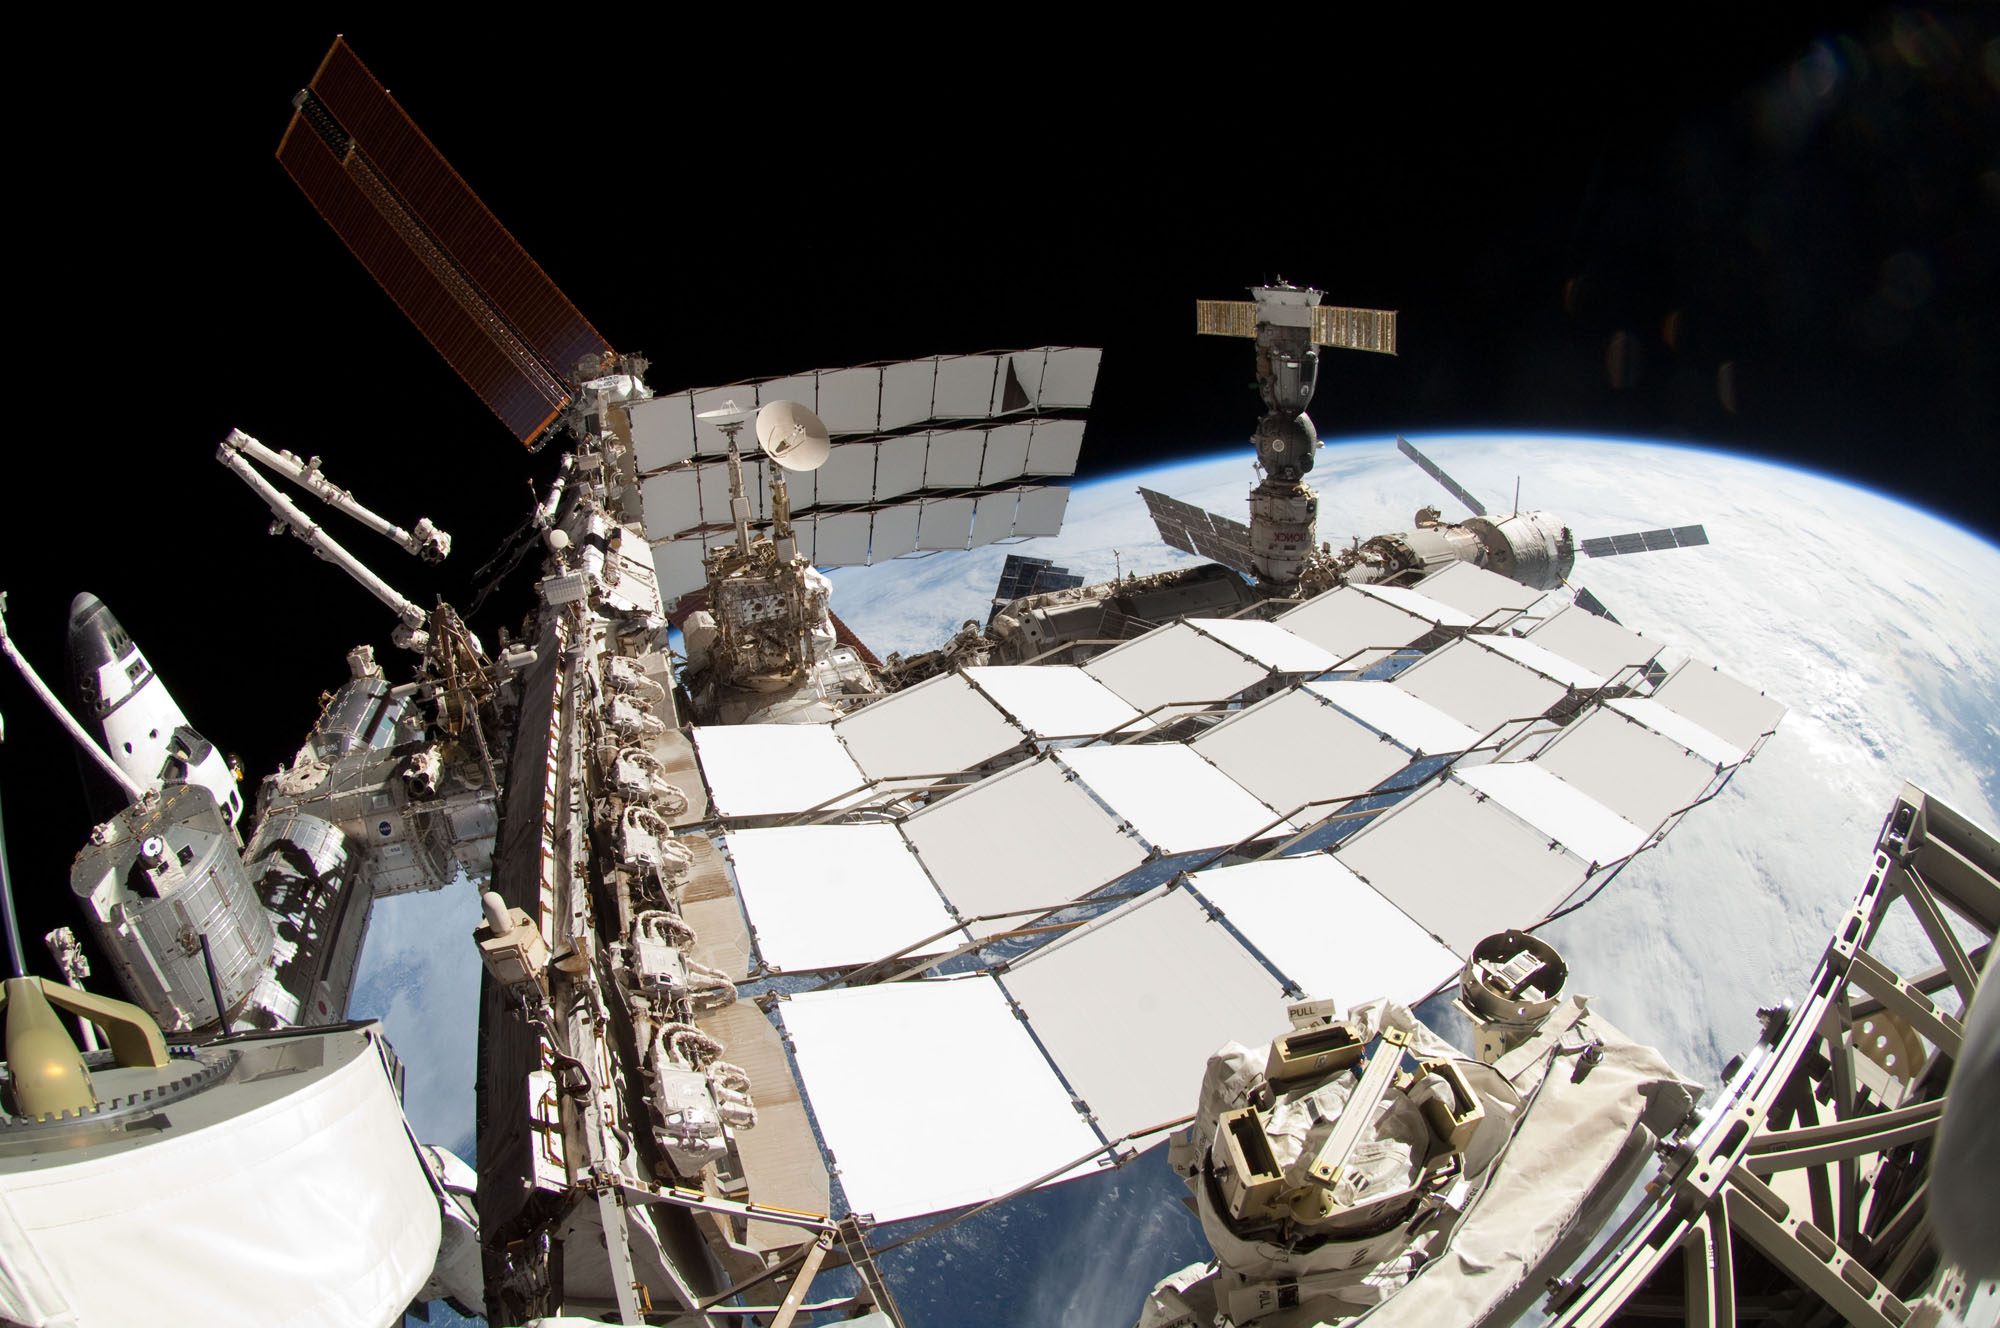 nasa iss schedule viewing - photo #39